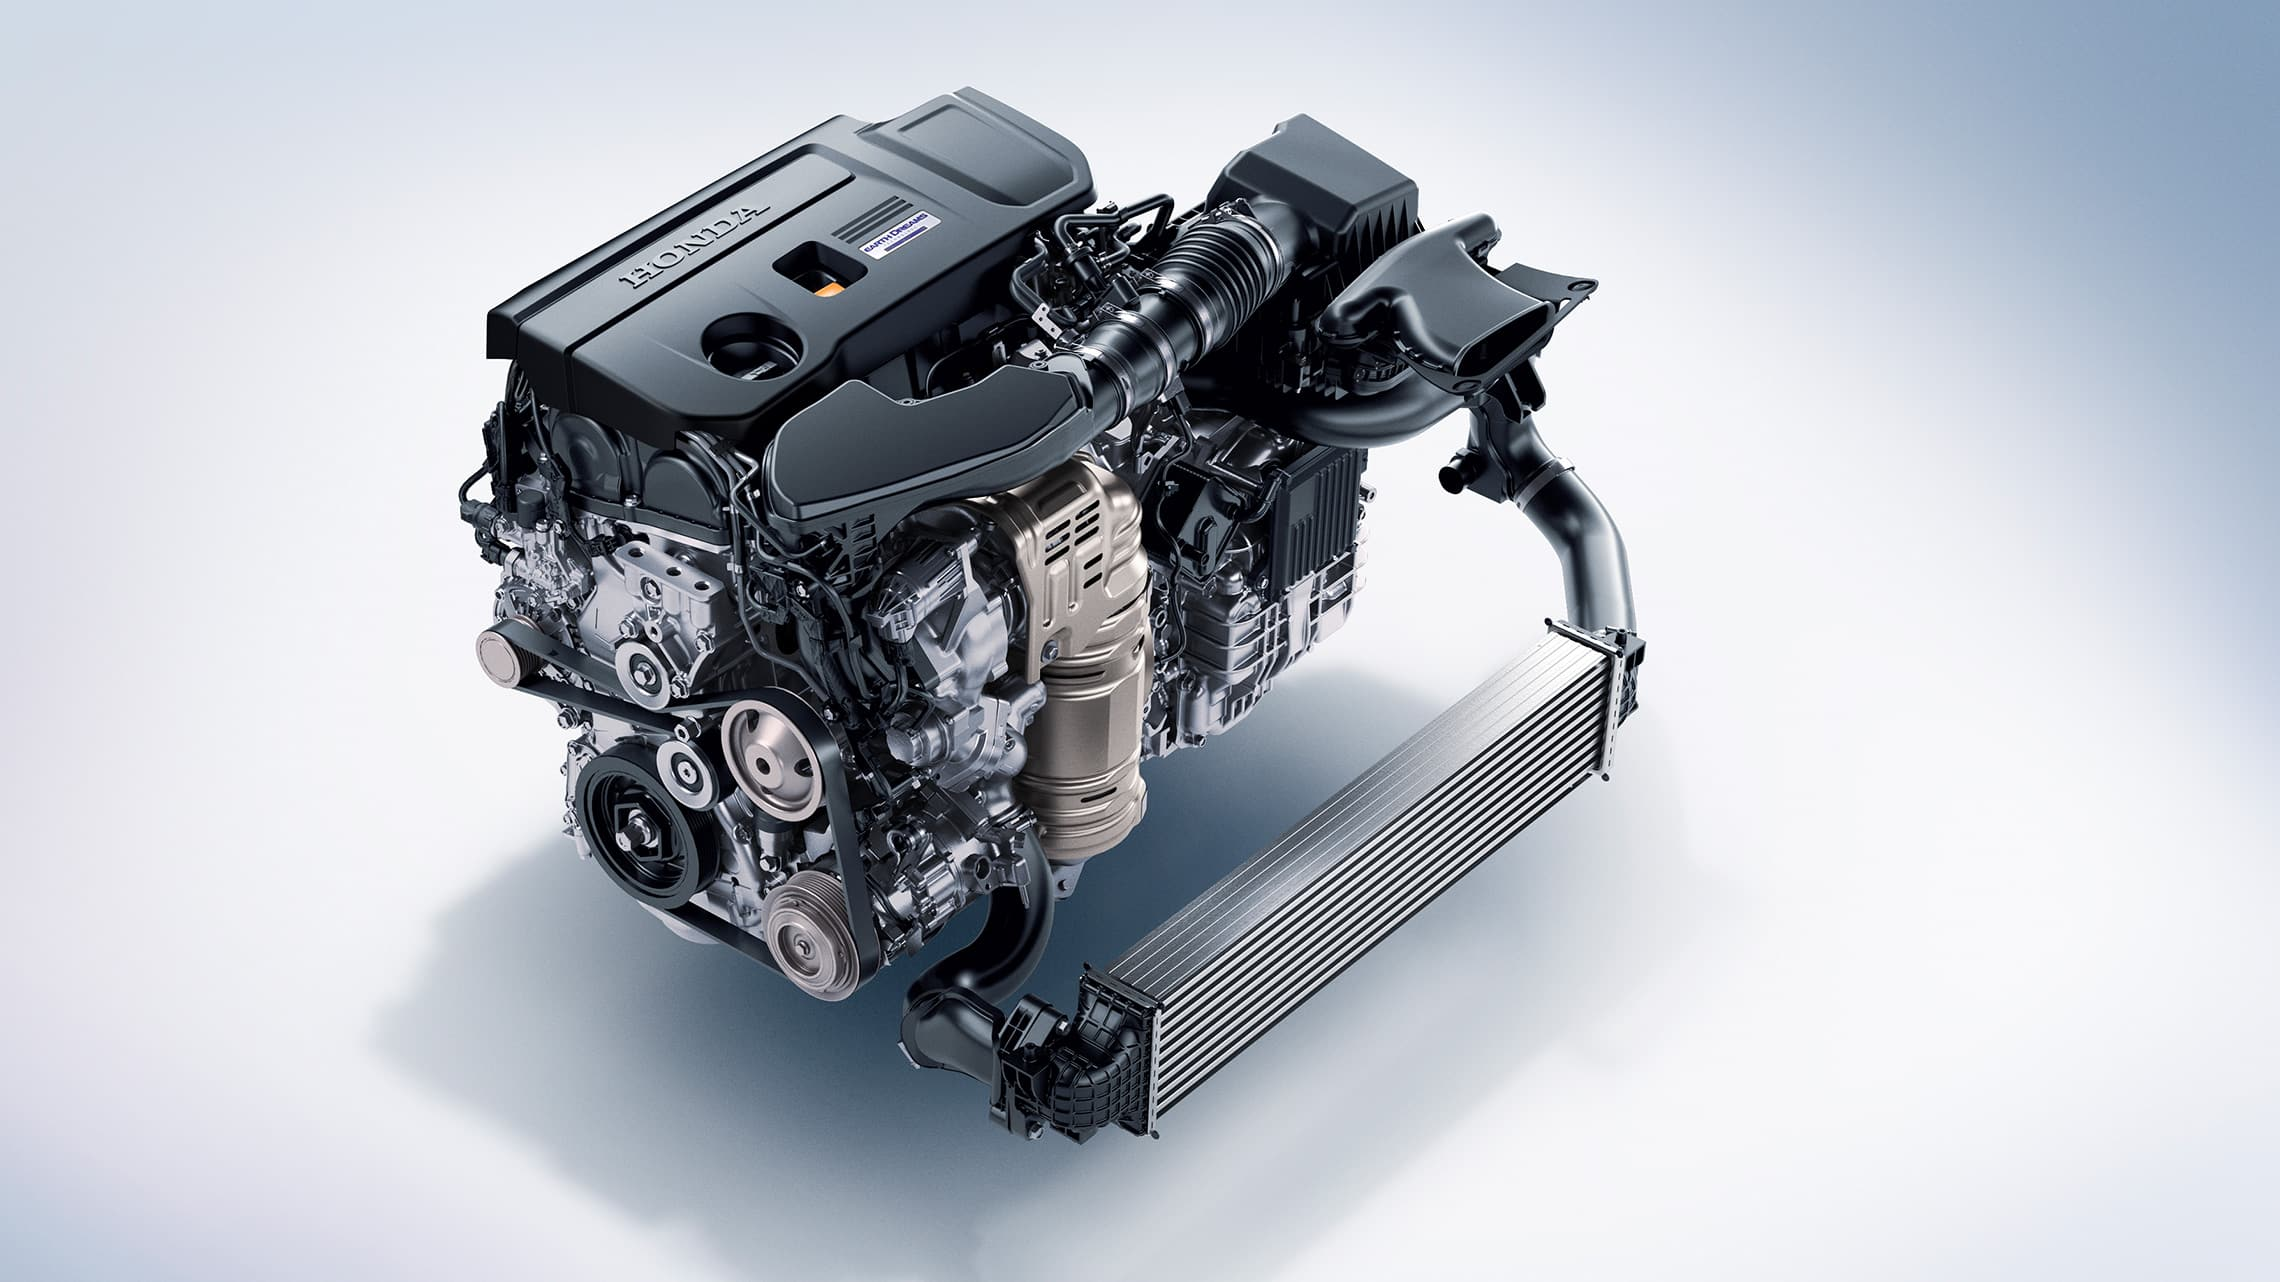 2.0-liter turbocharged engine detail on the 2020 Honda Accord.